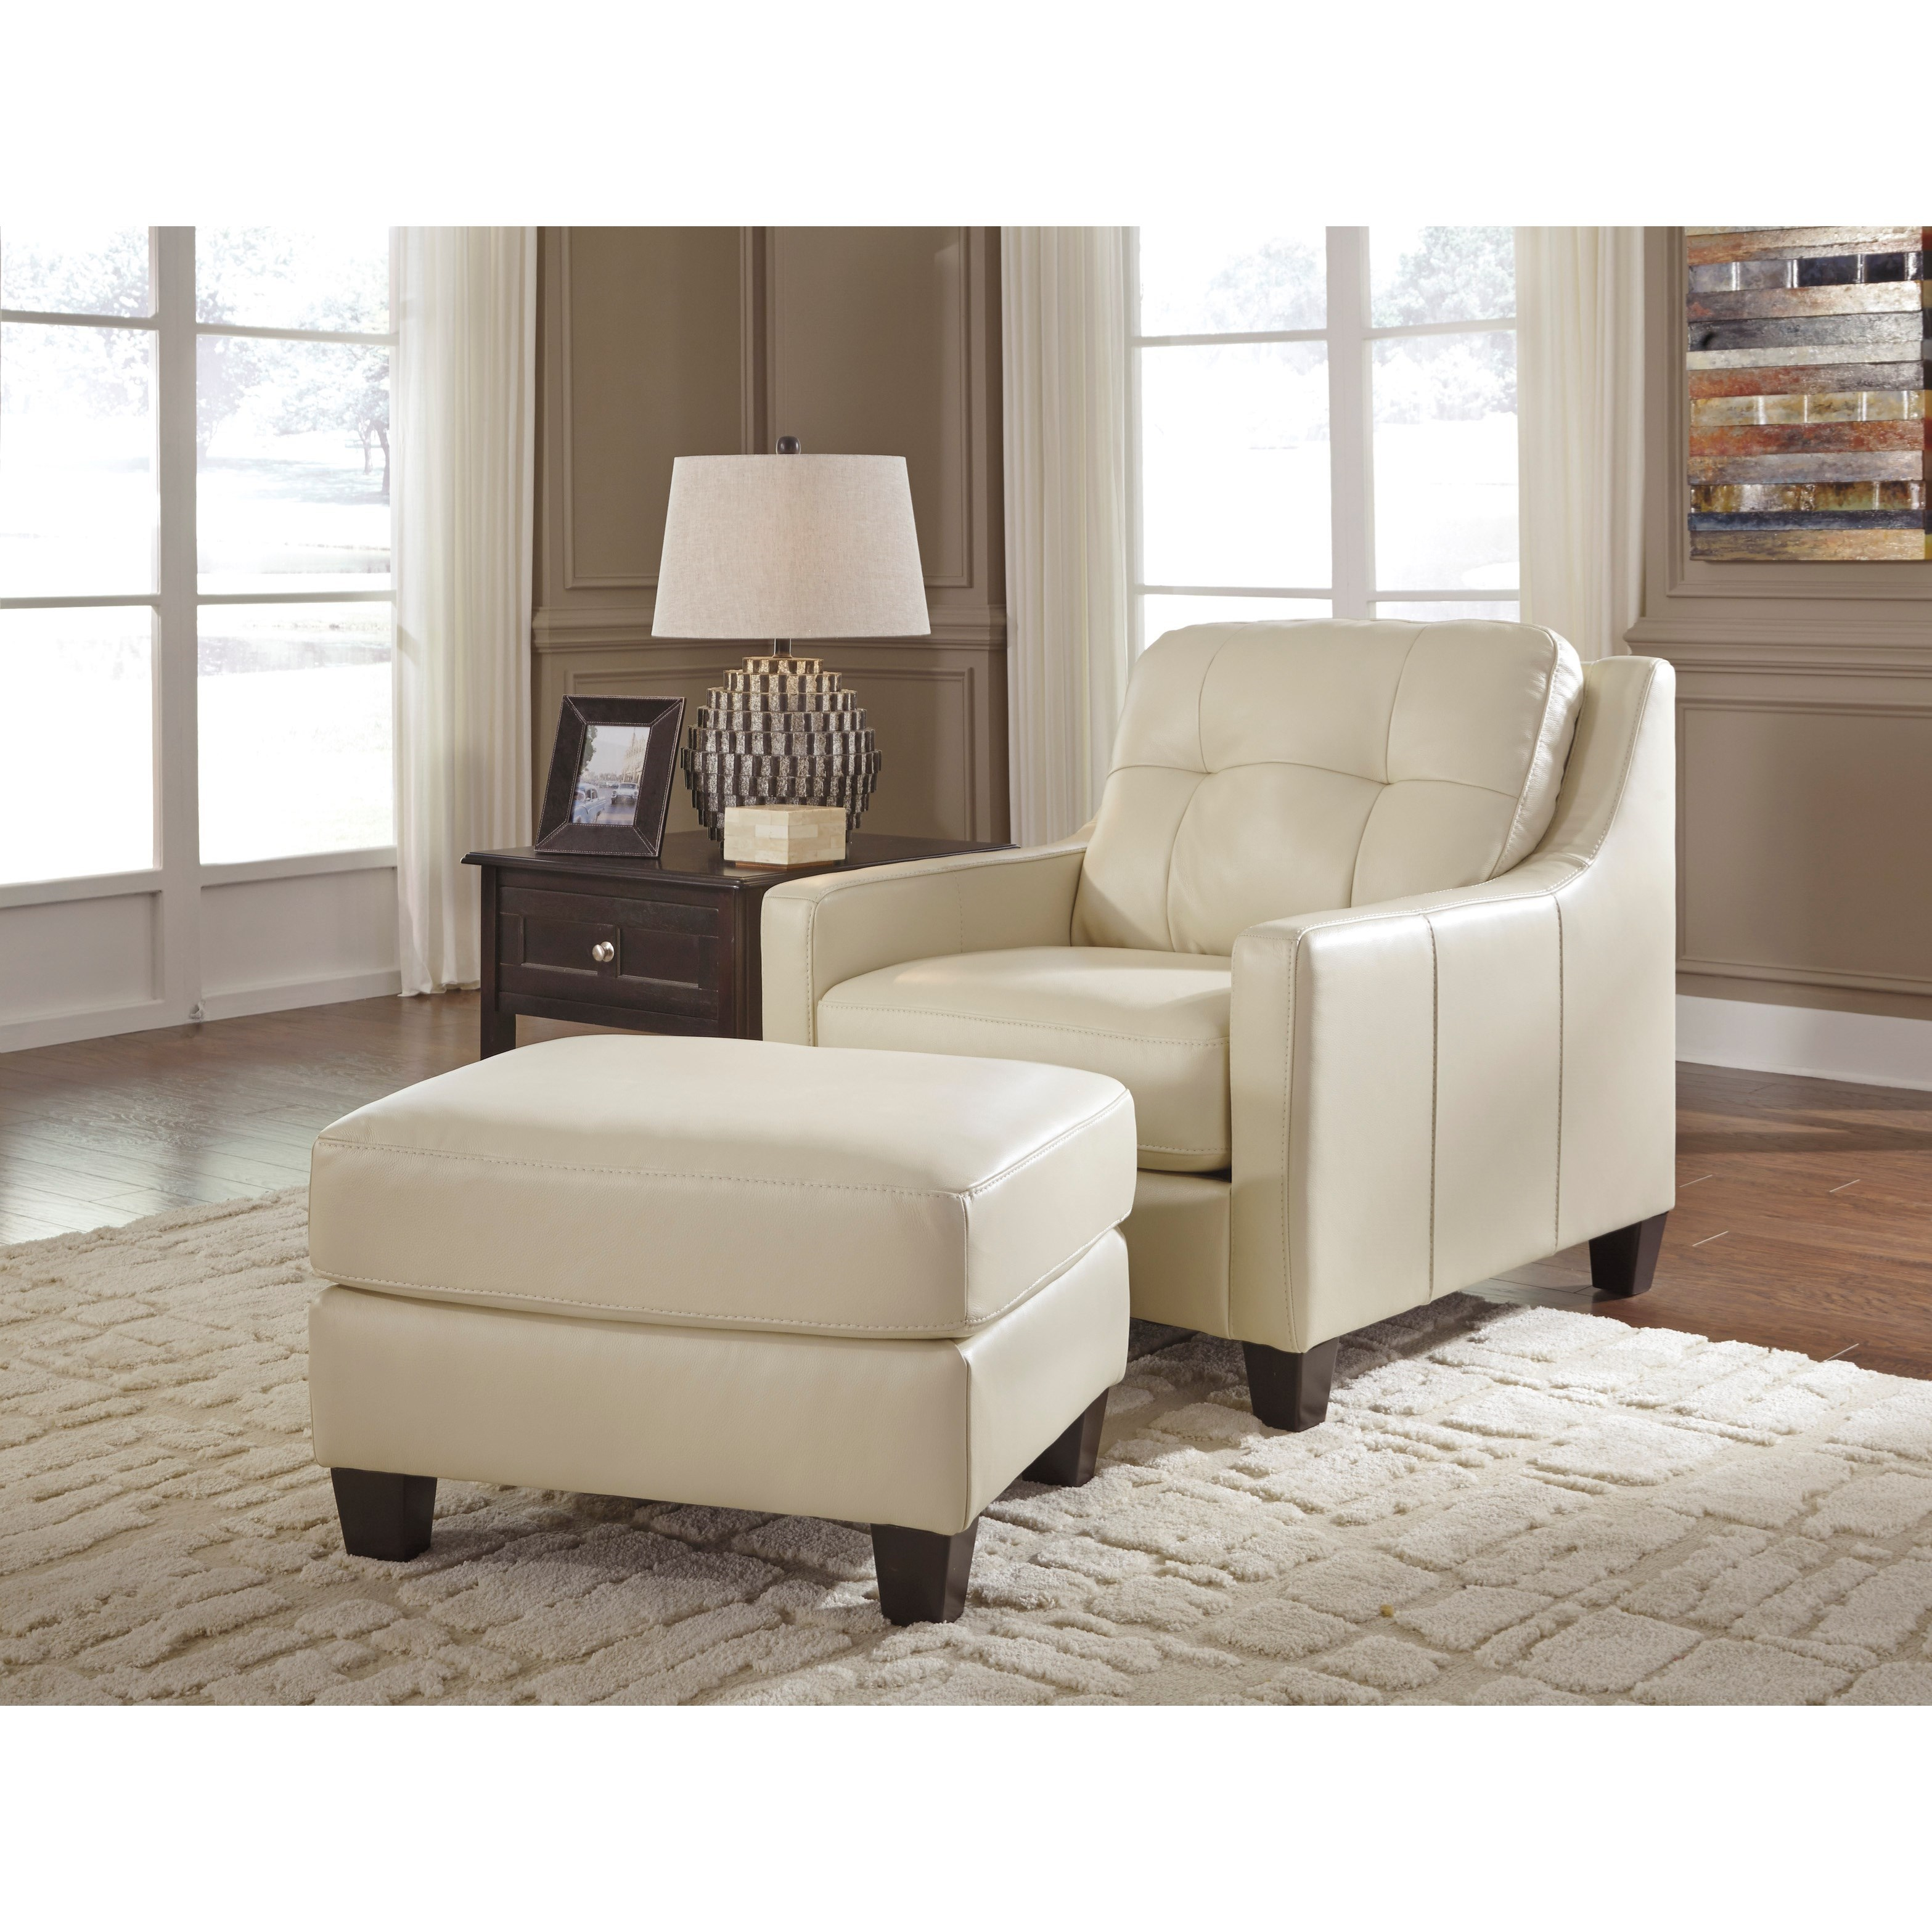 Signature Design By Ashley O 39 Kean Leather Match Ottoman Miskelly Furniture Ottomans